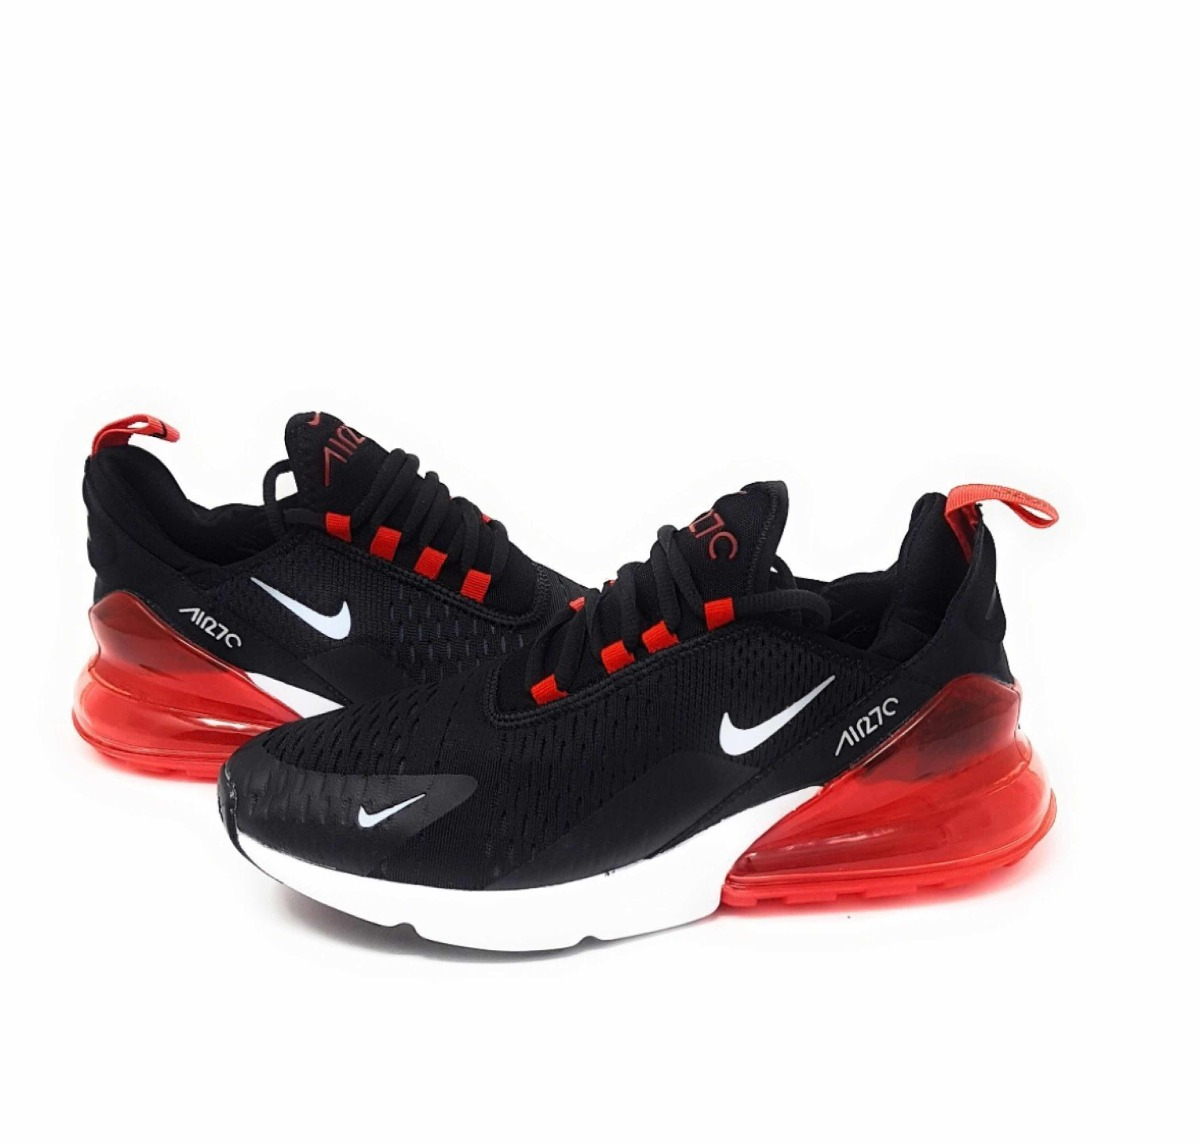 Tenis Outlet Nike Air Max 270 Negro rojo -   1 fd67e8cfaba